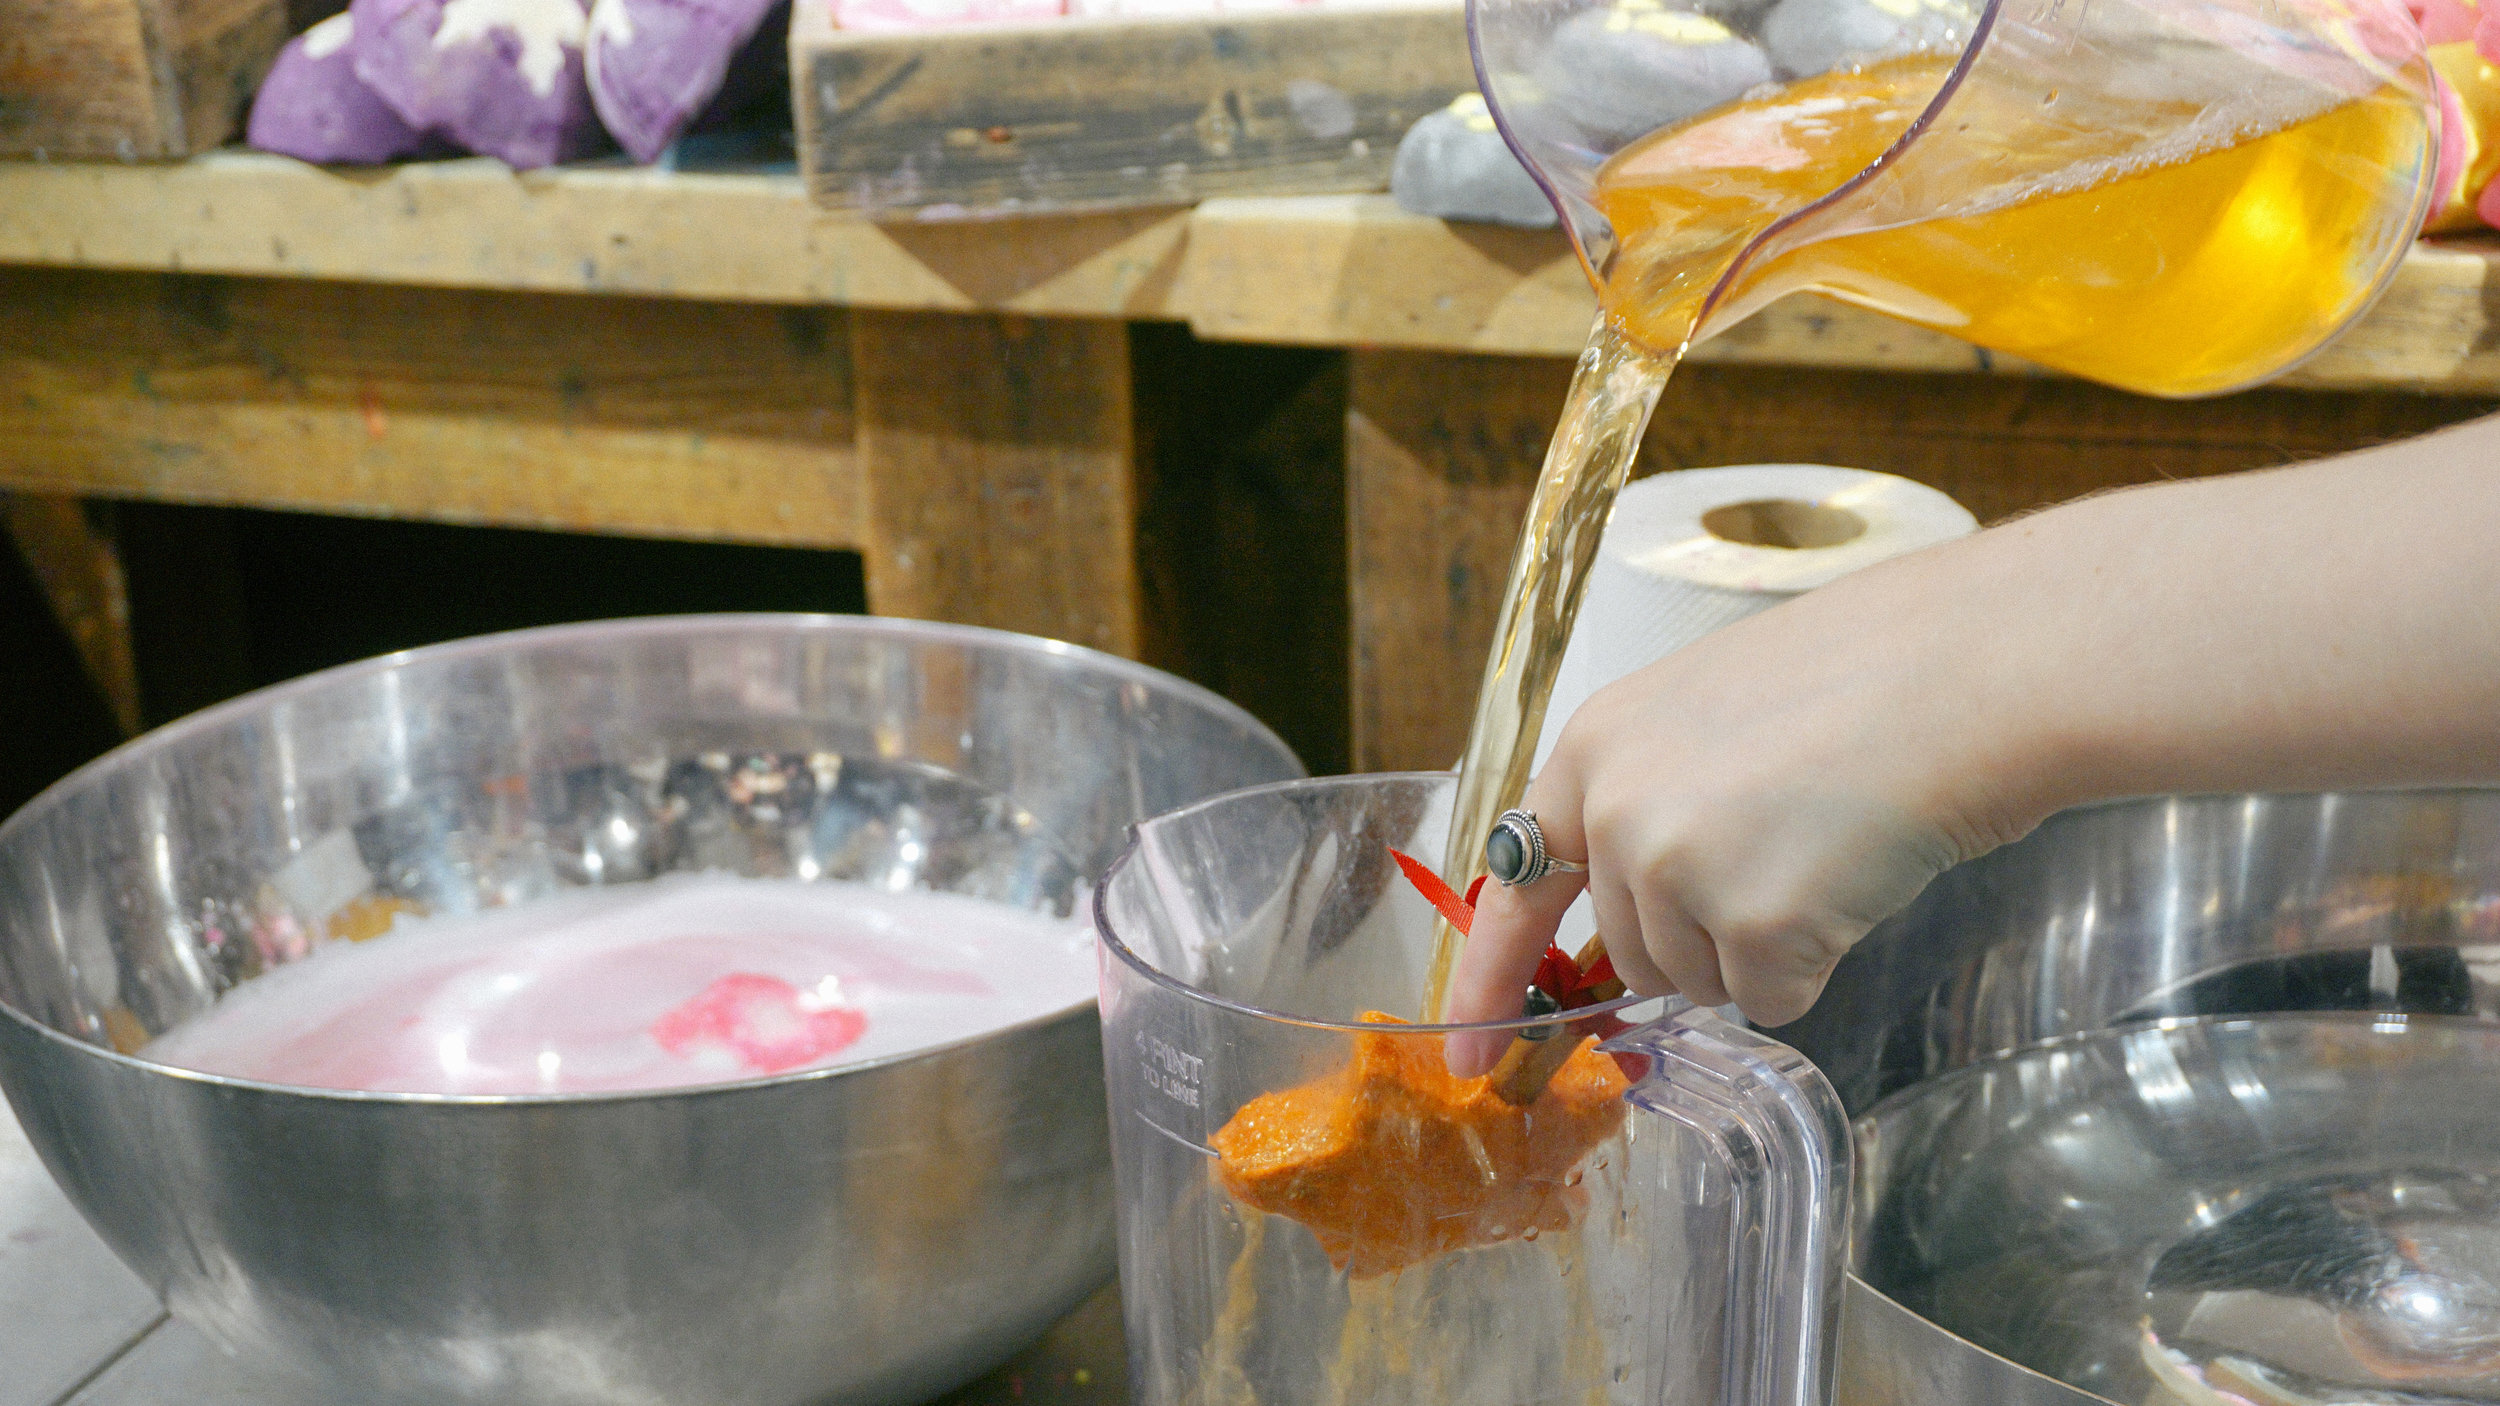 The Magic of Christmas Reusable Bubble Bar  in action